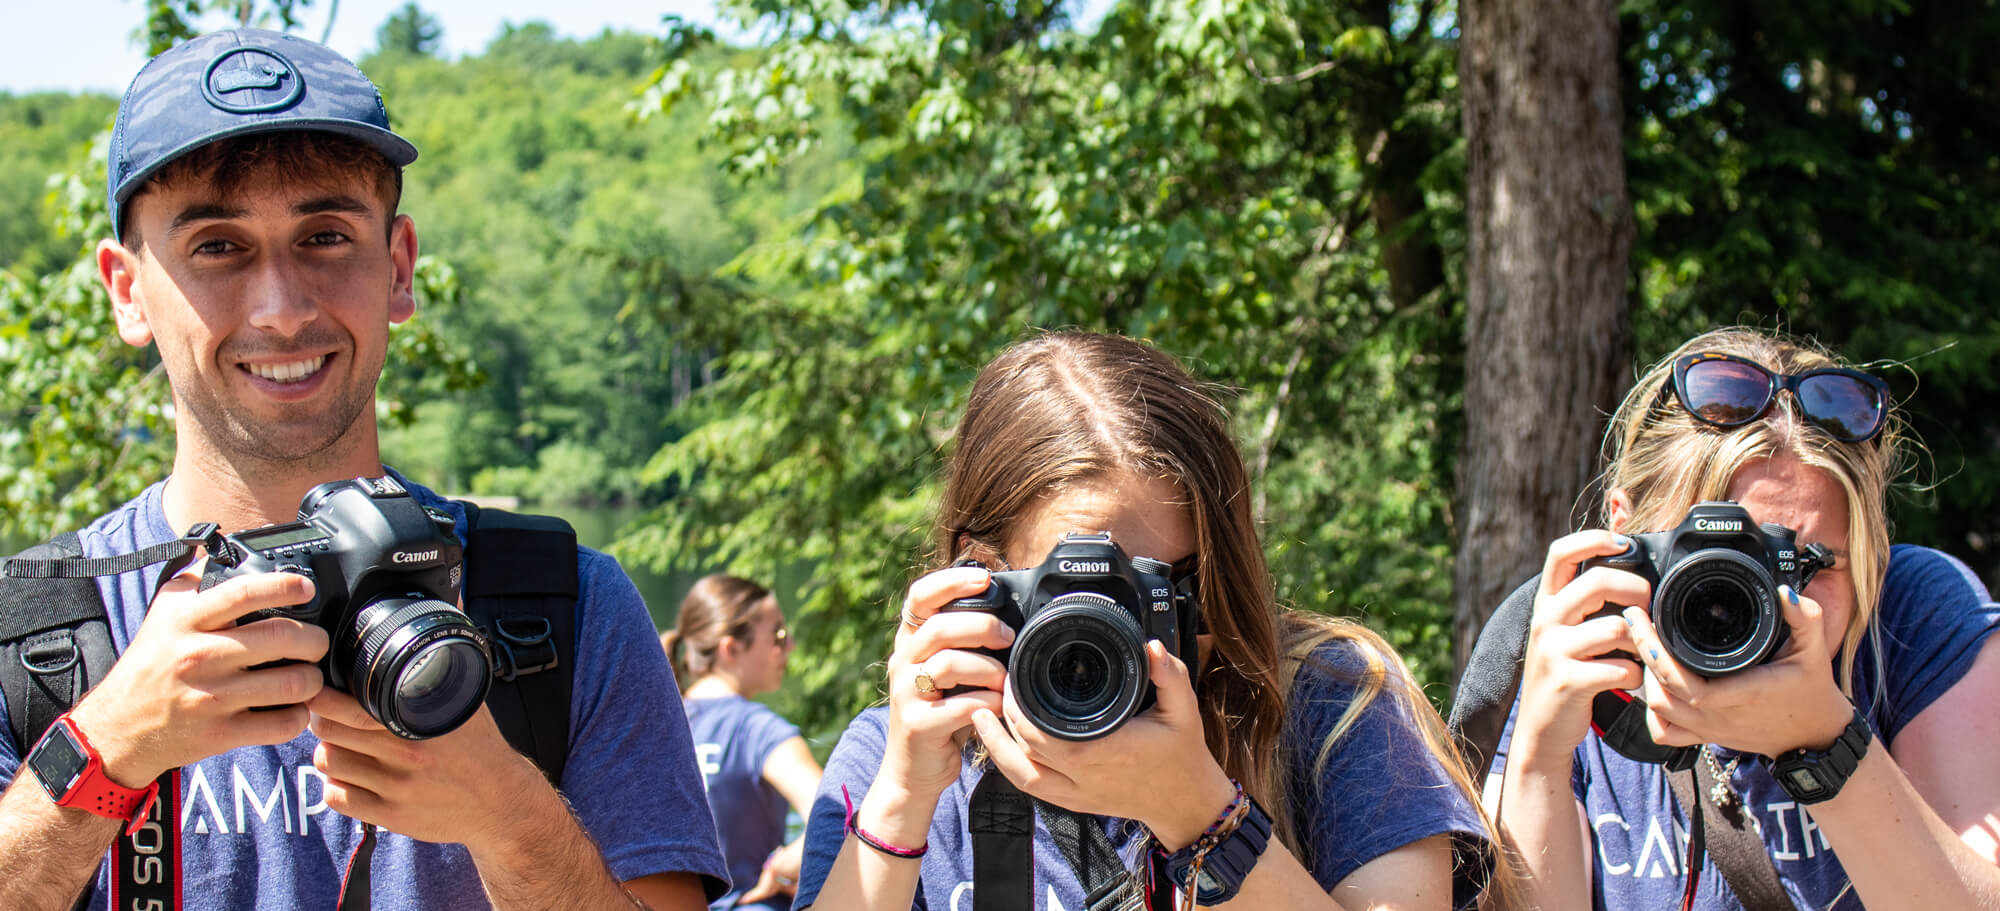 photography jobs at summer camp in america